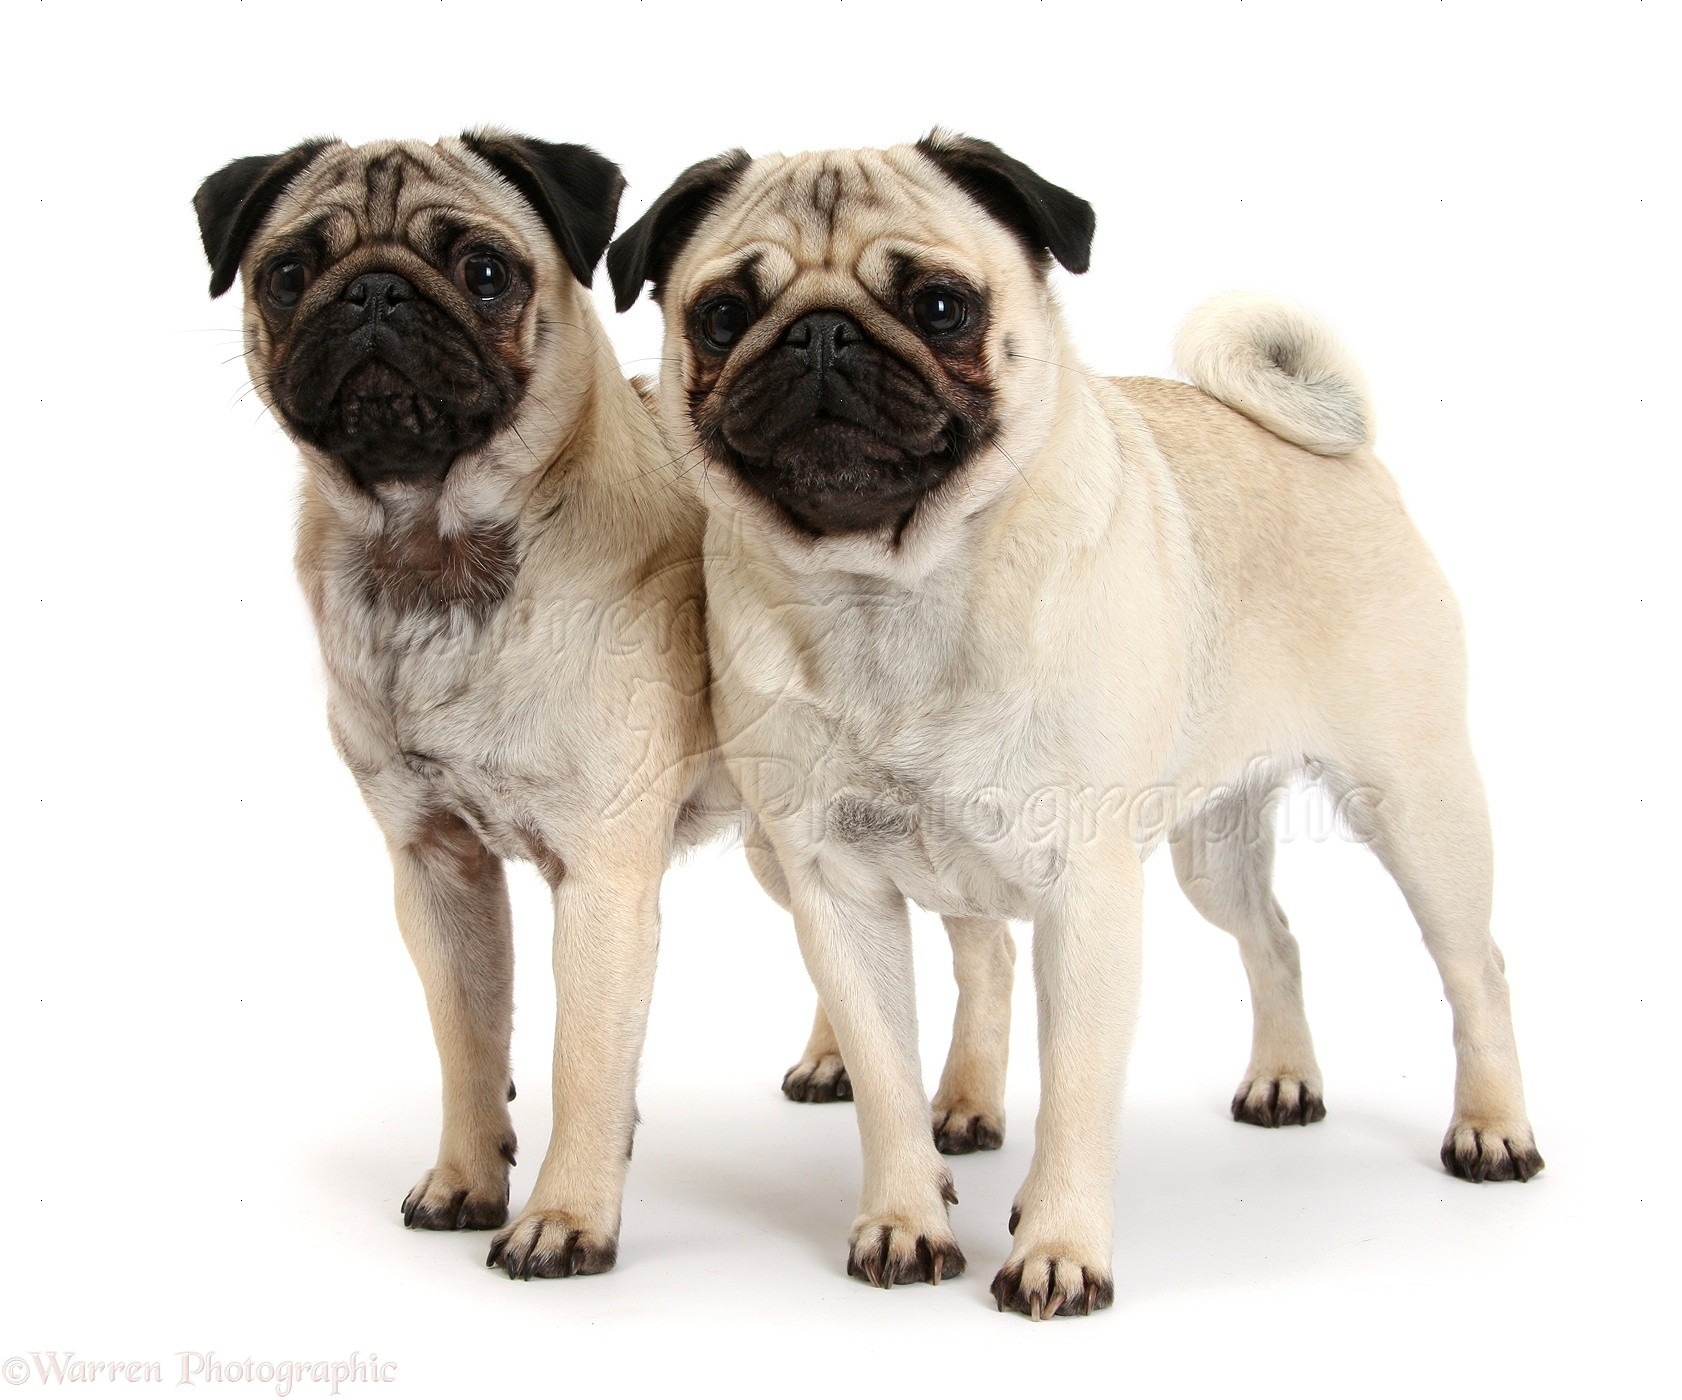 Dogs Two Fawn Pugs Standing Together Photo Wp40610